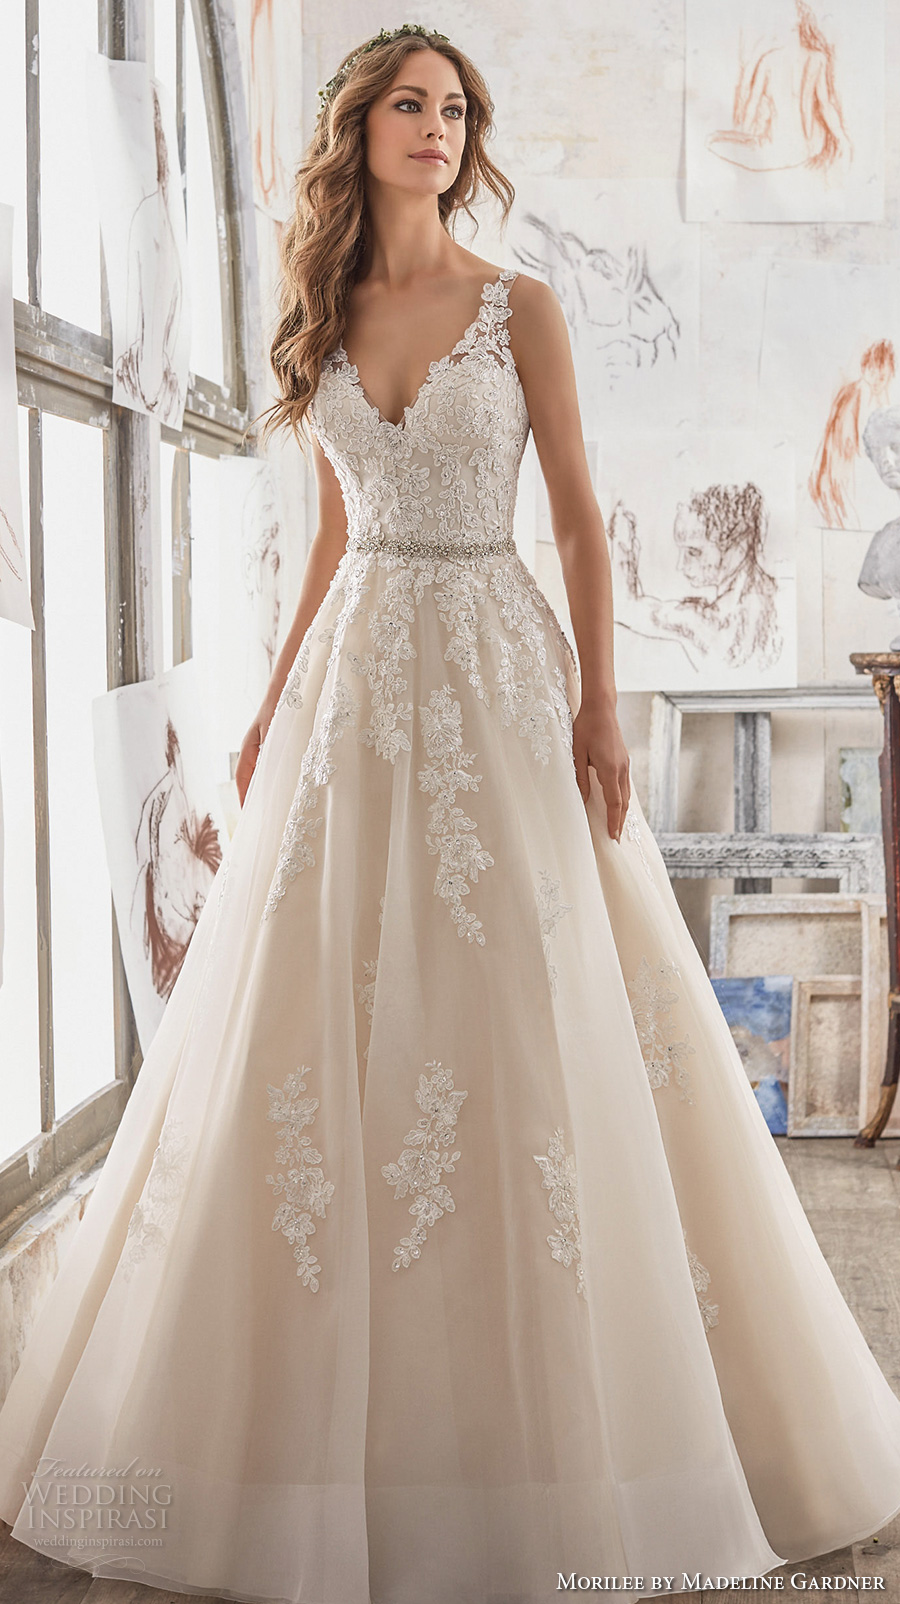 Morilee by madeline gardner spring 2017 wedding dresses for Wedding dresses in color